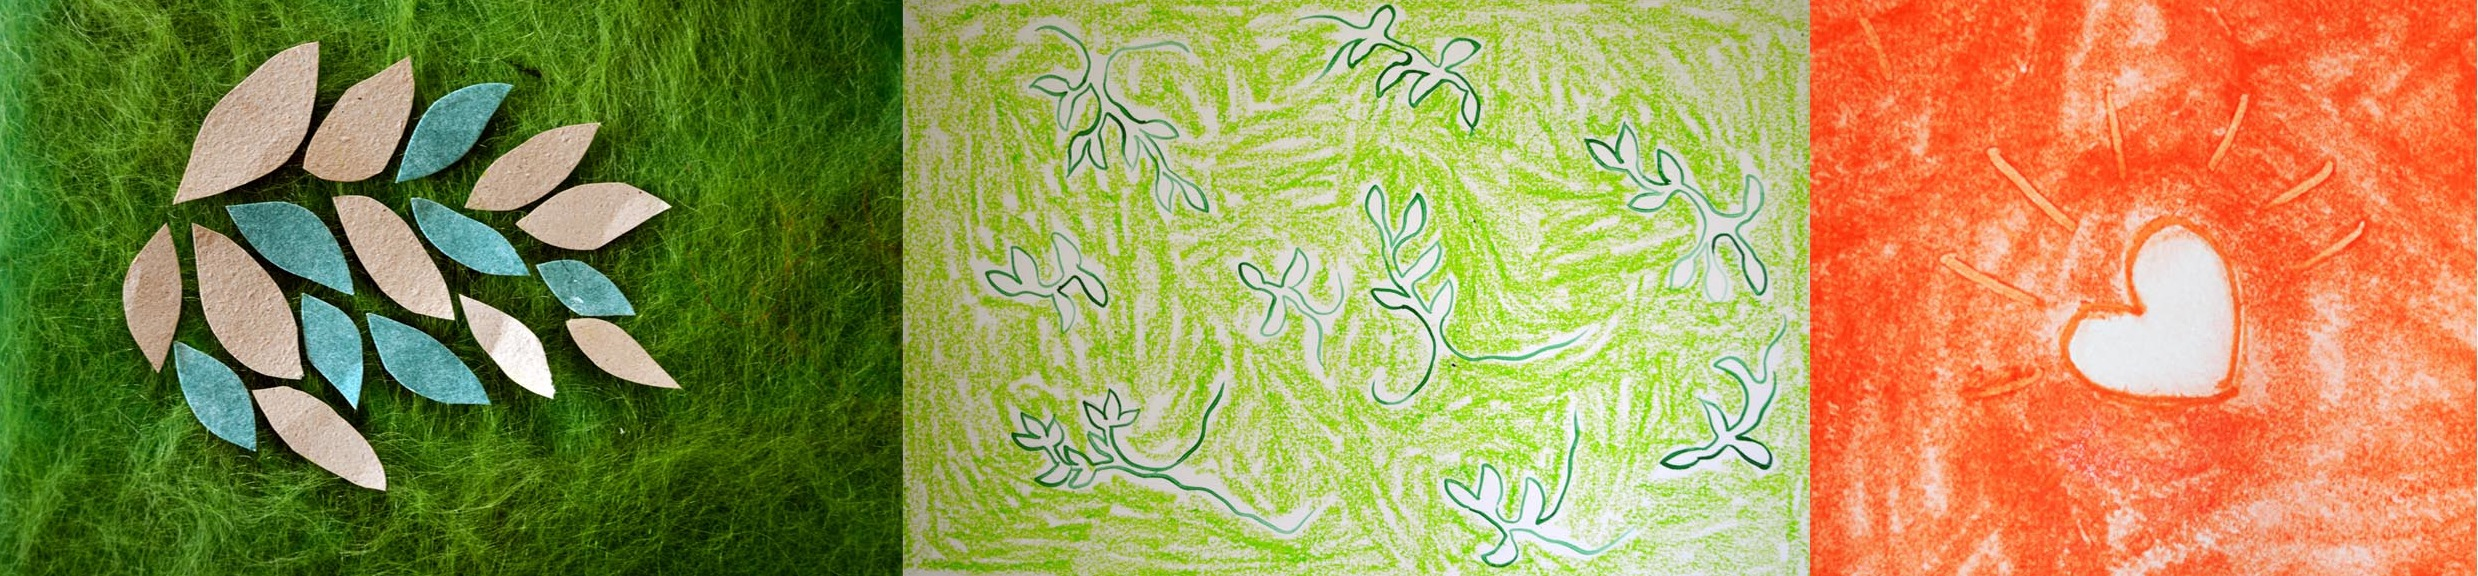 A strip of different artistic images including: 1. P aper collage of green and light brown leaves on green silk paper background. 2. Pastel and pencil drawing of dark and light green and white plants. 3. Orange pastel drawing with a white heart with radiating lines.  © all images by   Natalya Garden-Thompson, 2016